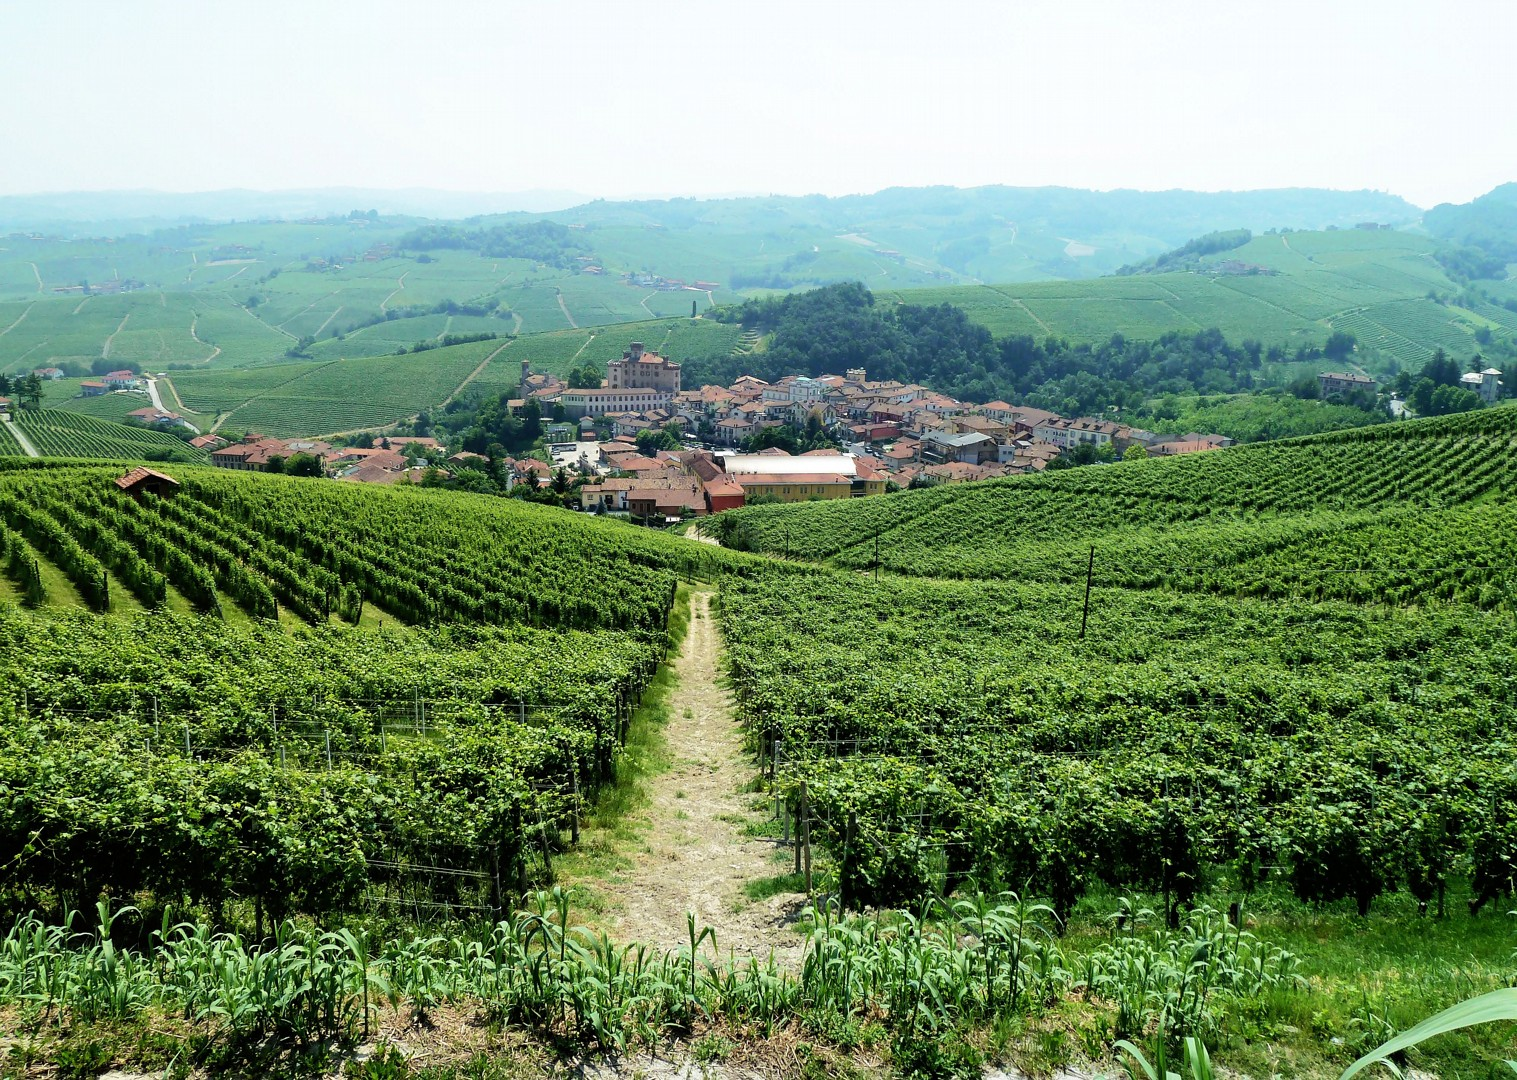 langhe-italy-piemontes-vineyards-and-views-self-guided-leisure-cycling-holiday.jpg - Italy - Piemonte's Vineyards and Views - Leisure Cycling